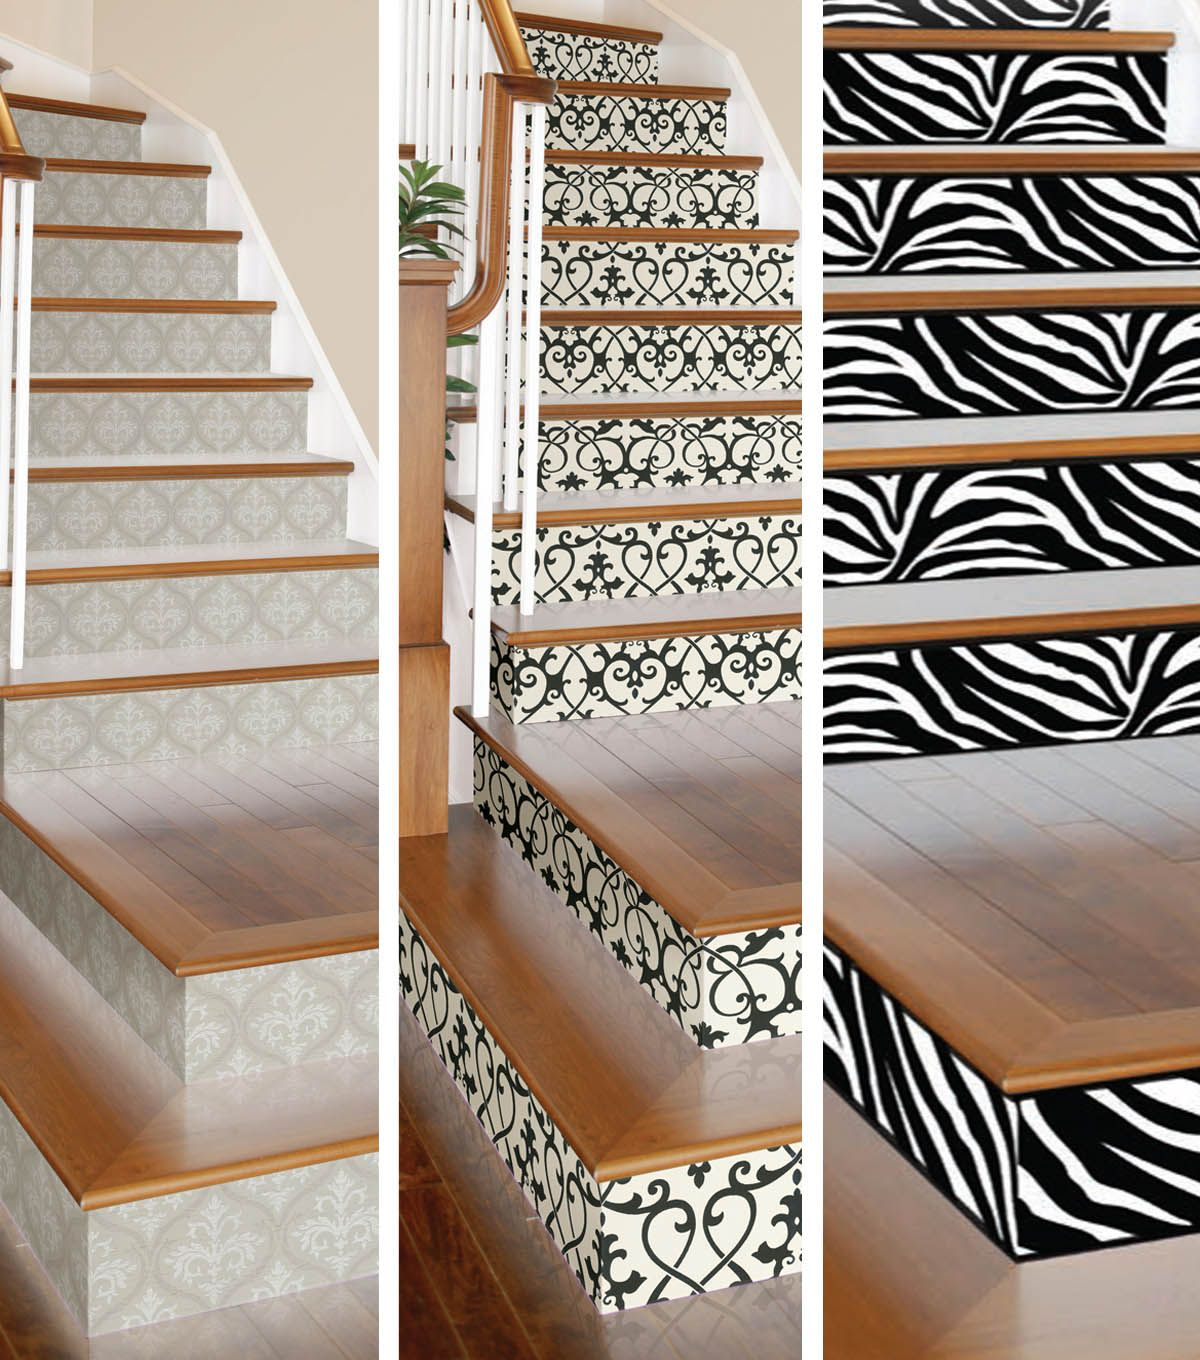 Wooden Stairs With Painted Stripes Updating Interior: Give Your Stairs Some Flair With DIY Wallpapered Stair